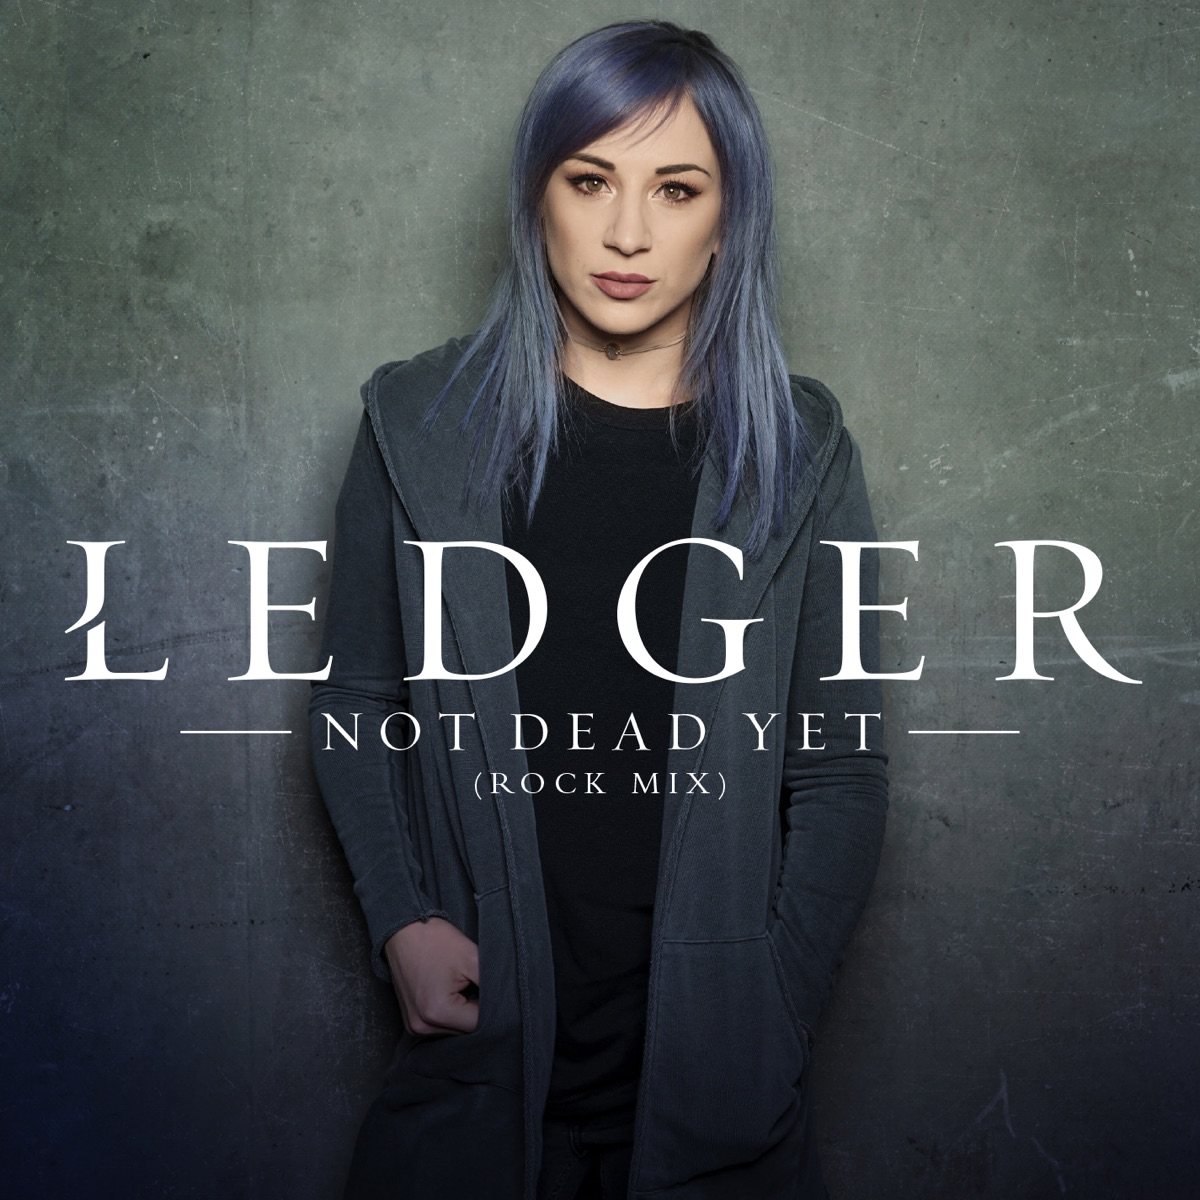 Not Dead Yet Rock Mix - Single Ledger CD cover